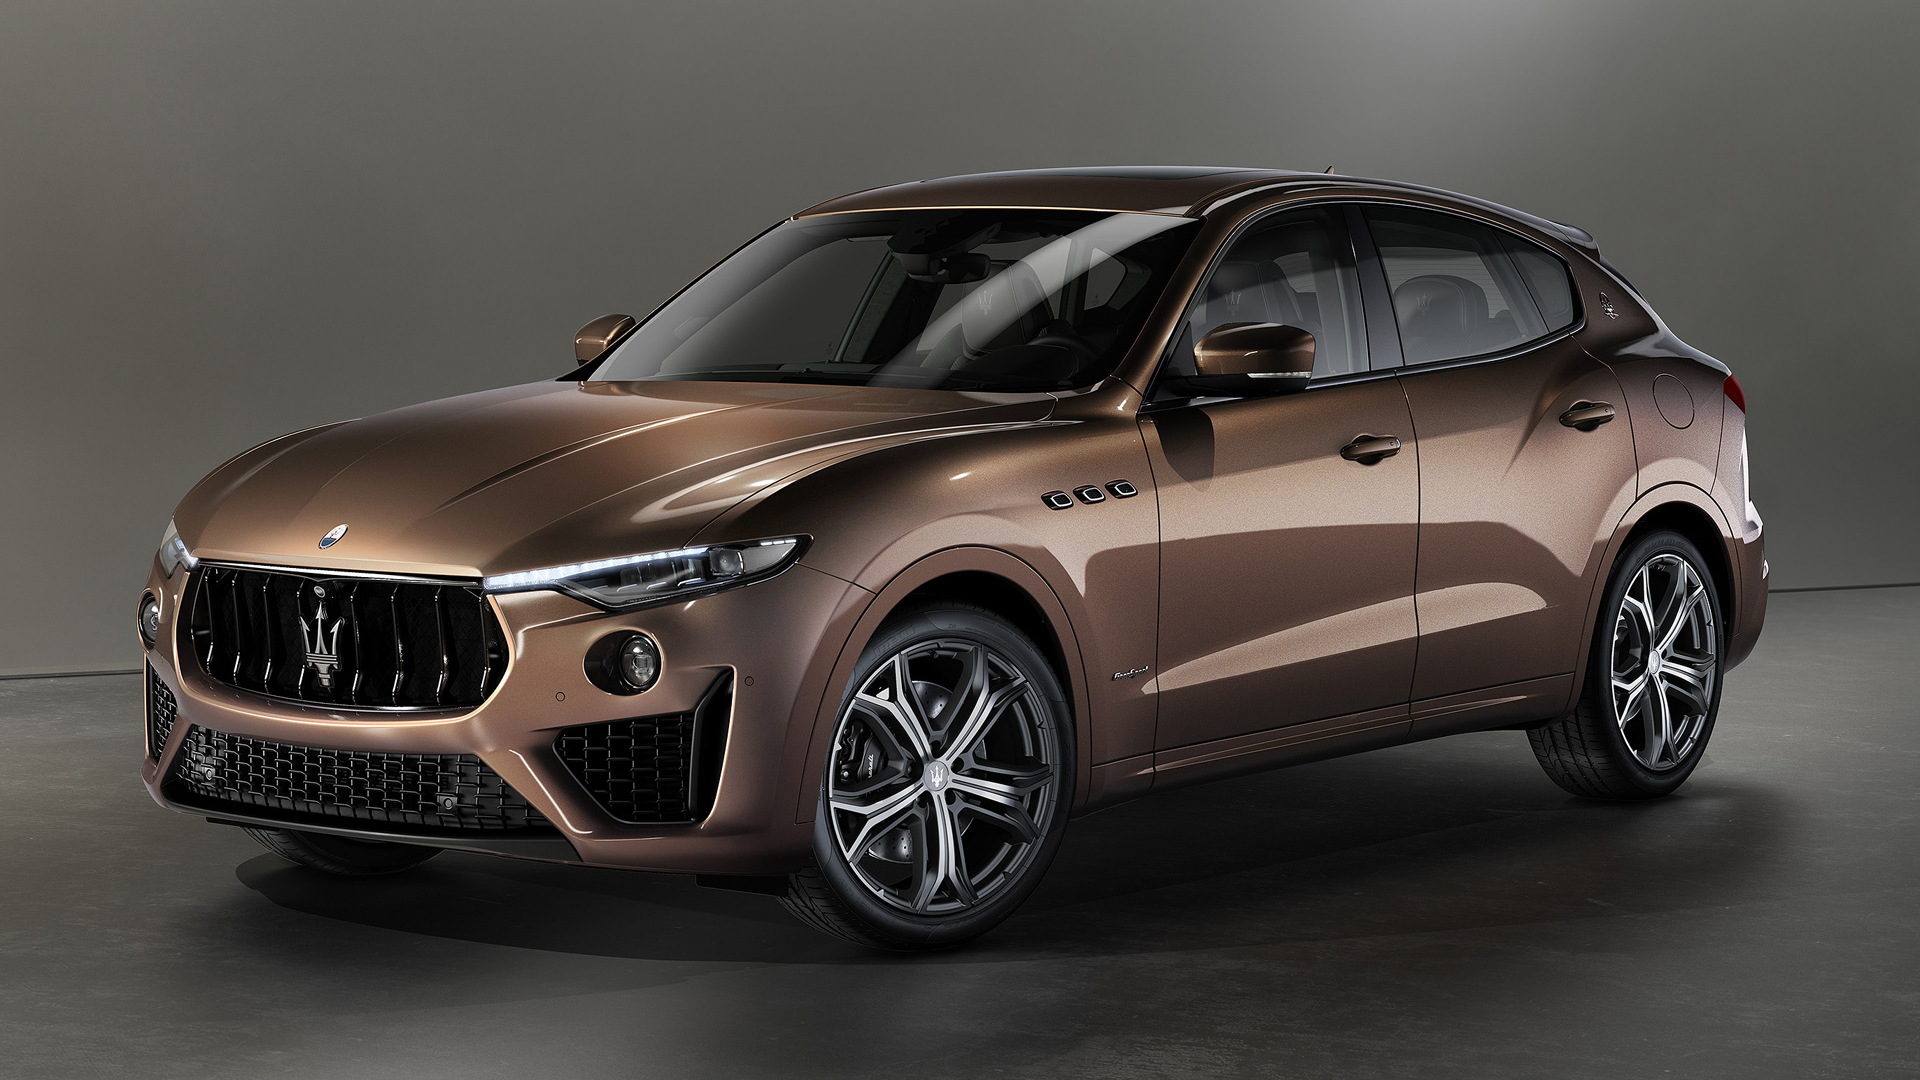 2020 Maserati Levante with Zegna Pelletessuta woven leather interior